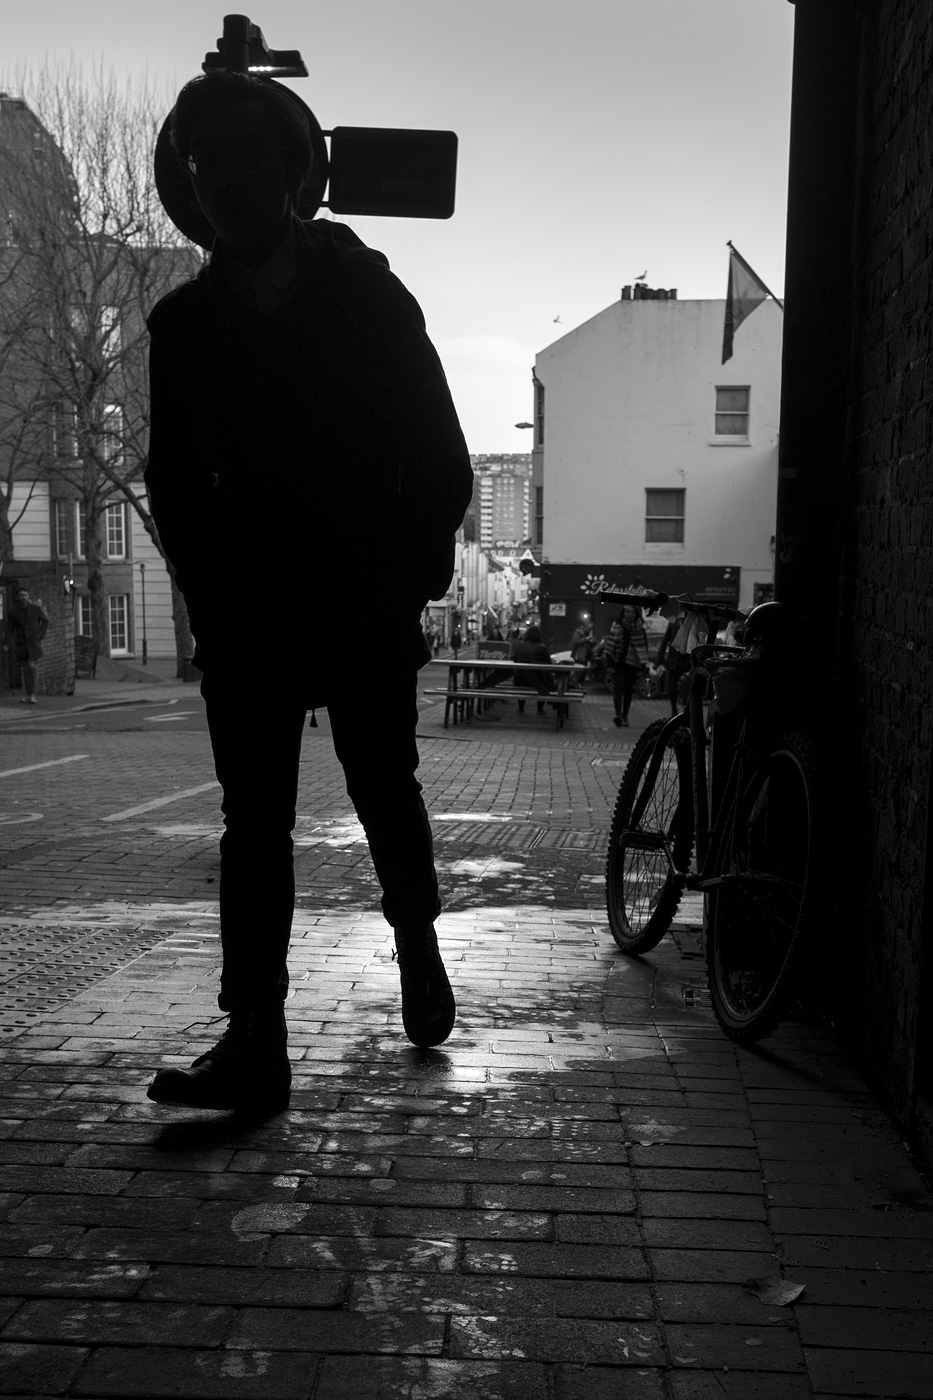 Silhouette of man walking into dark foreground with road sign obscuring head, Trafalgar Street North Laine Brighton UK black and white documentary street photography © P. Maton 2018 eyeteeth.net